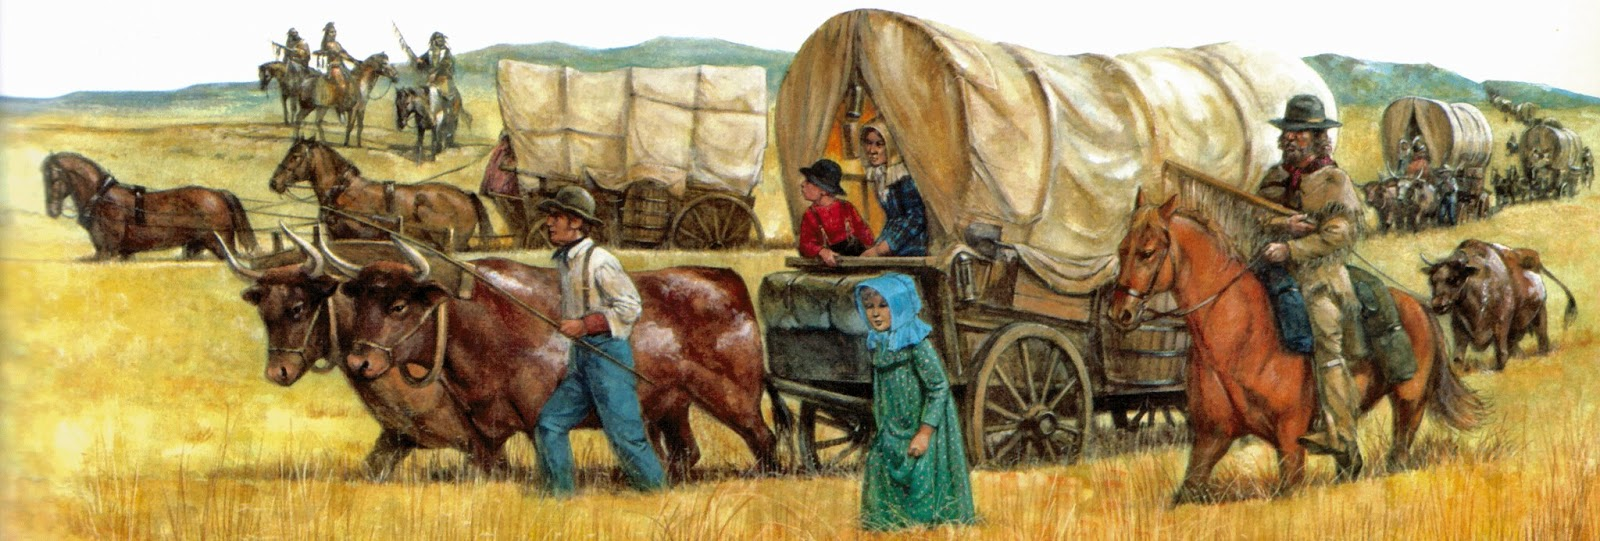 the pilgrimgram hit the trail Wagon Clip Art Horse and Wagon Clip Art